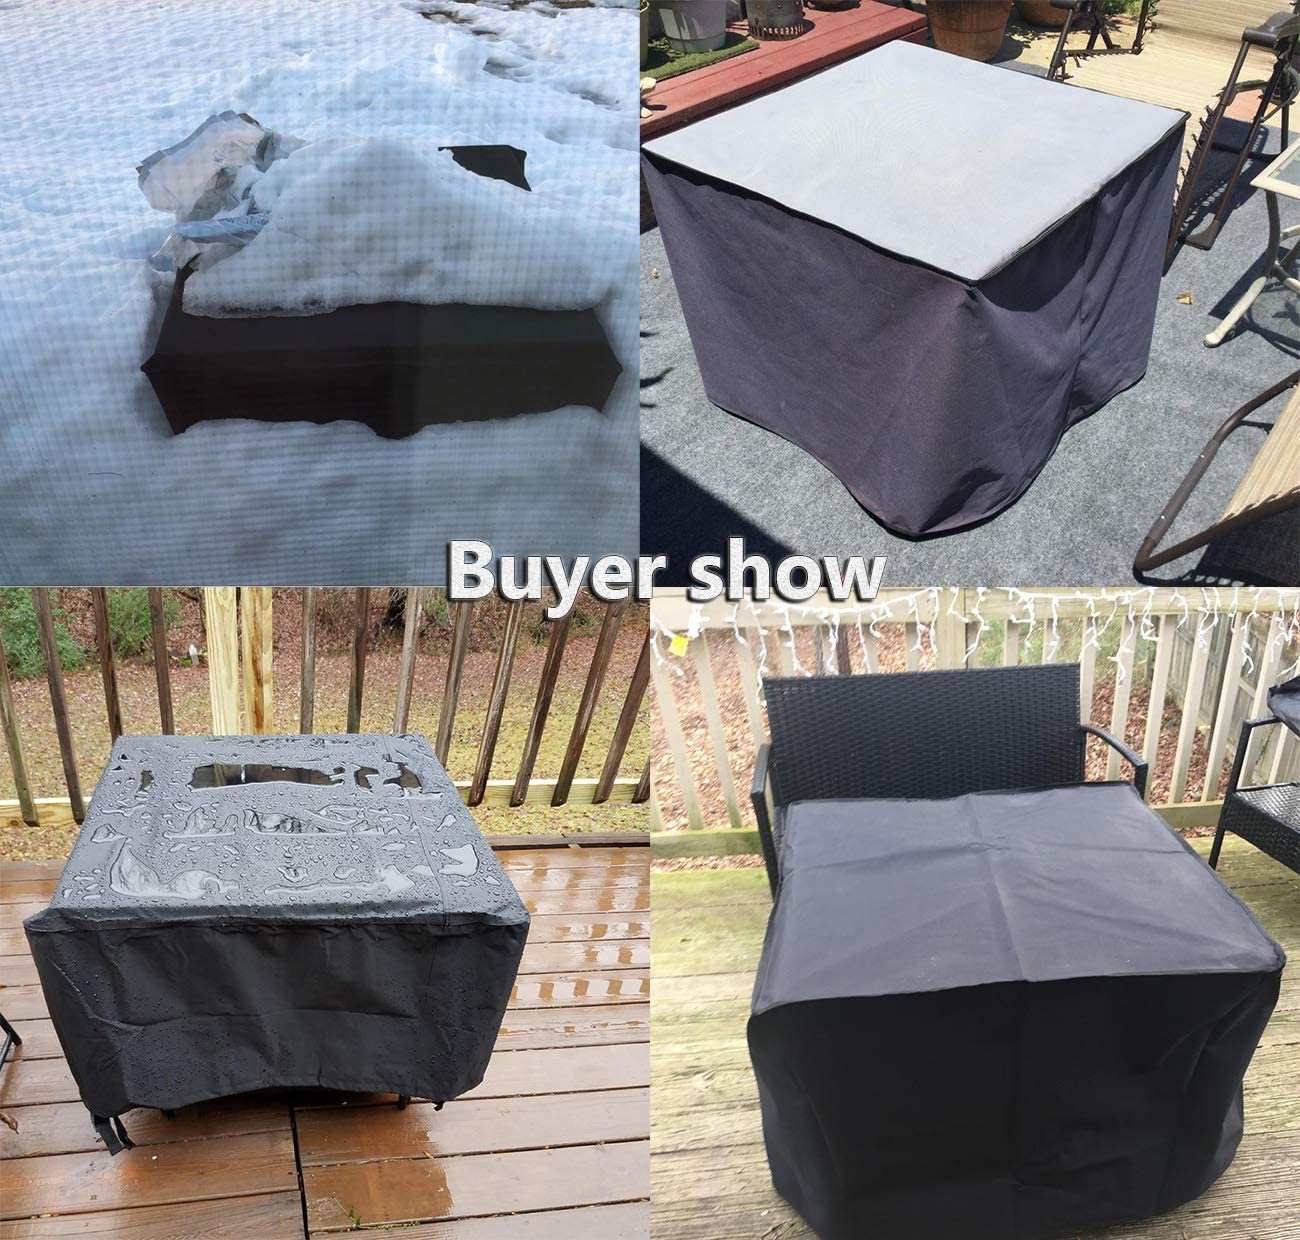 Waterproof Outdoor Furniture Cover WOMACO Heavy Duty Square Patio Fire Pit//Table Cover 48 x 48 x 29, Black